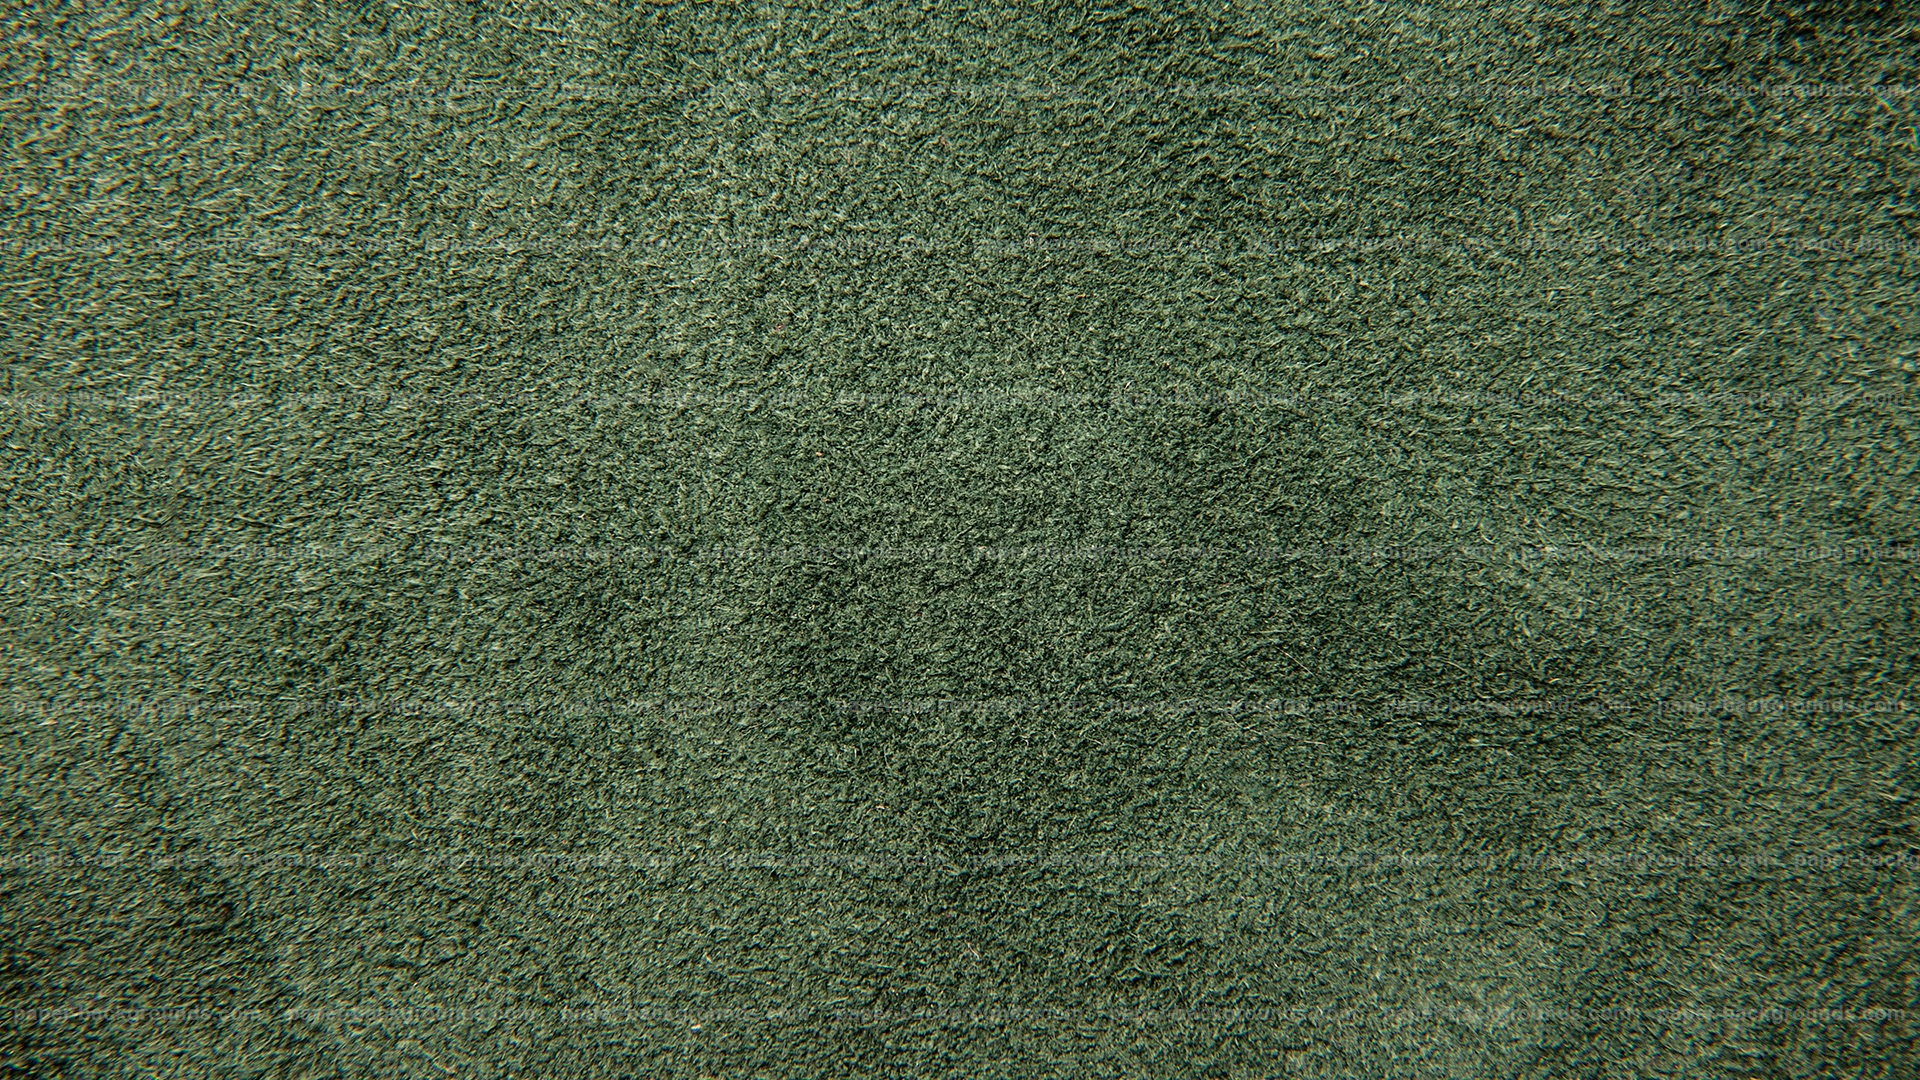 Dark Green Soft Leather Texture Background HD